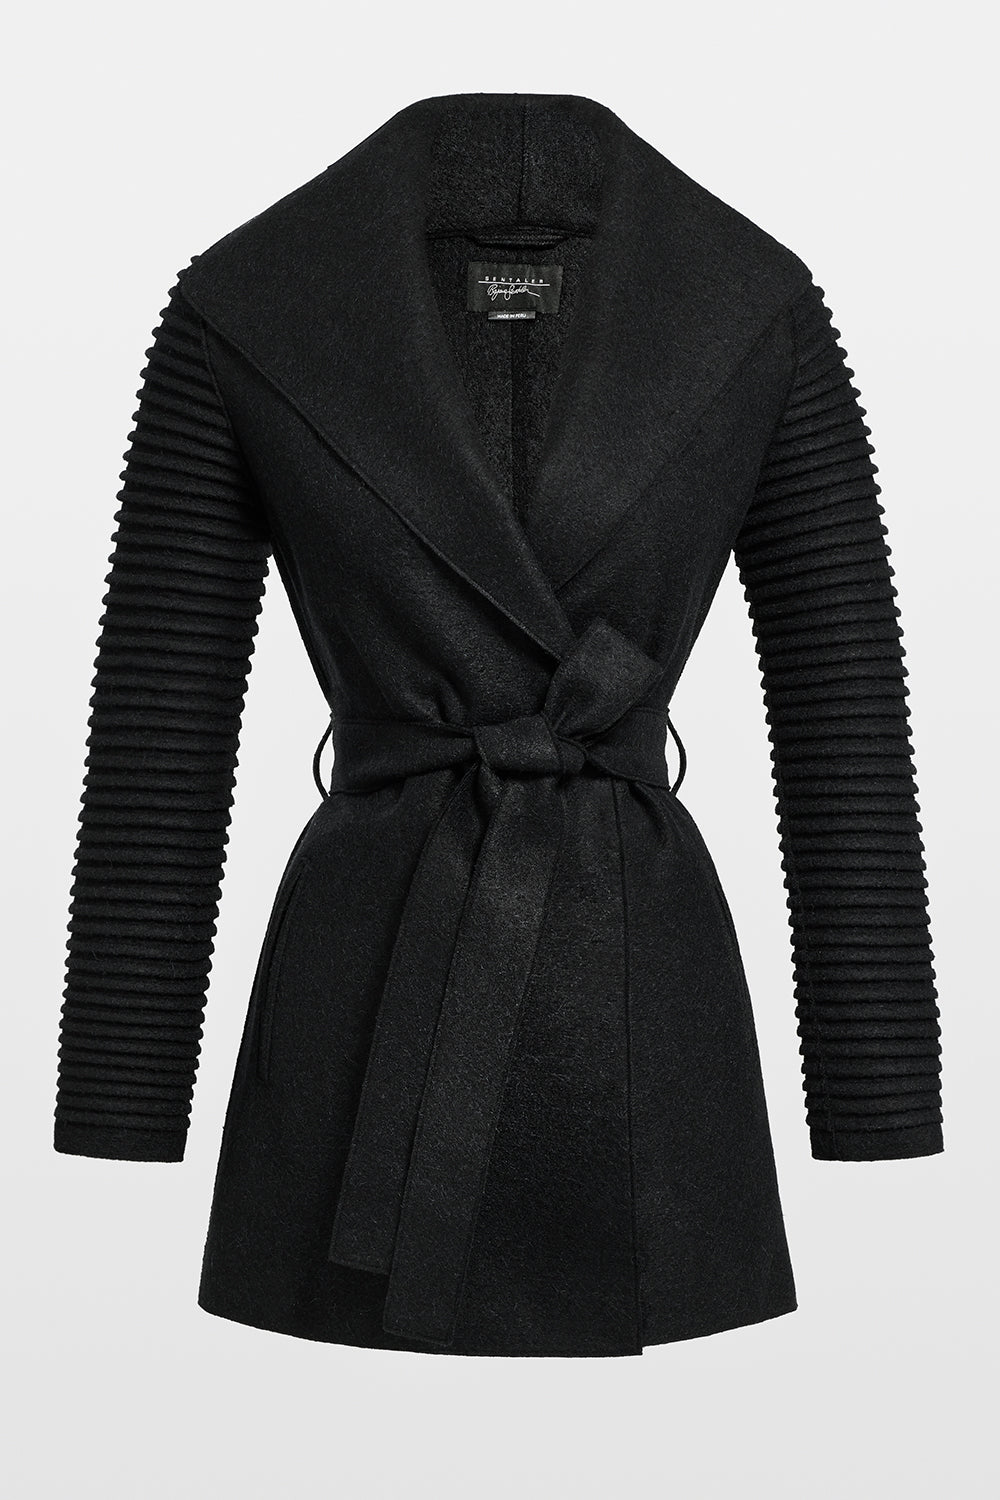 Sentaler Wrap Coat with Ribbed Sleeves featured in Superfine Alpaca and available in Black. Seen off model.